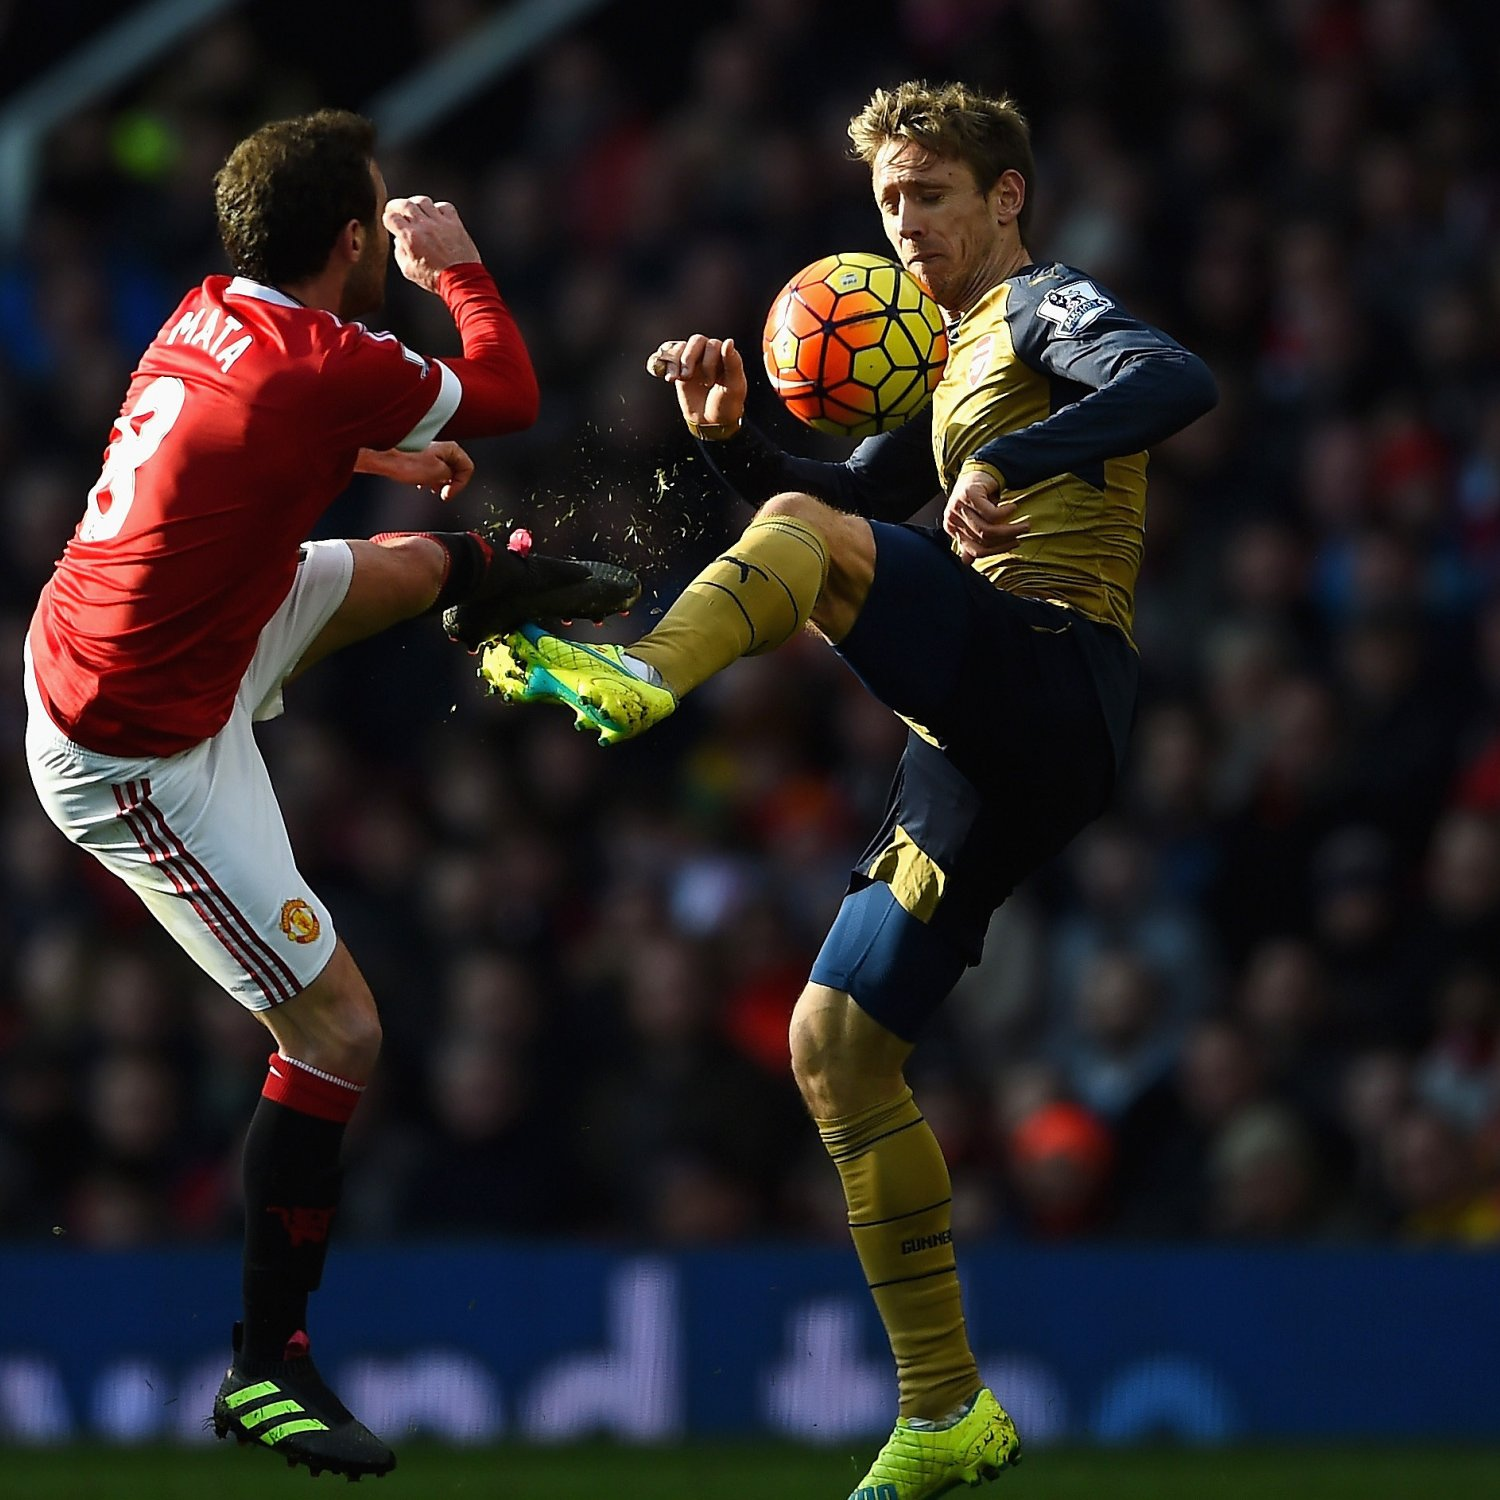 Psg Vs Manchester City Live Score Highlights From: Manchester United Vs. Arsenal: Live Score, Highlights From